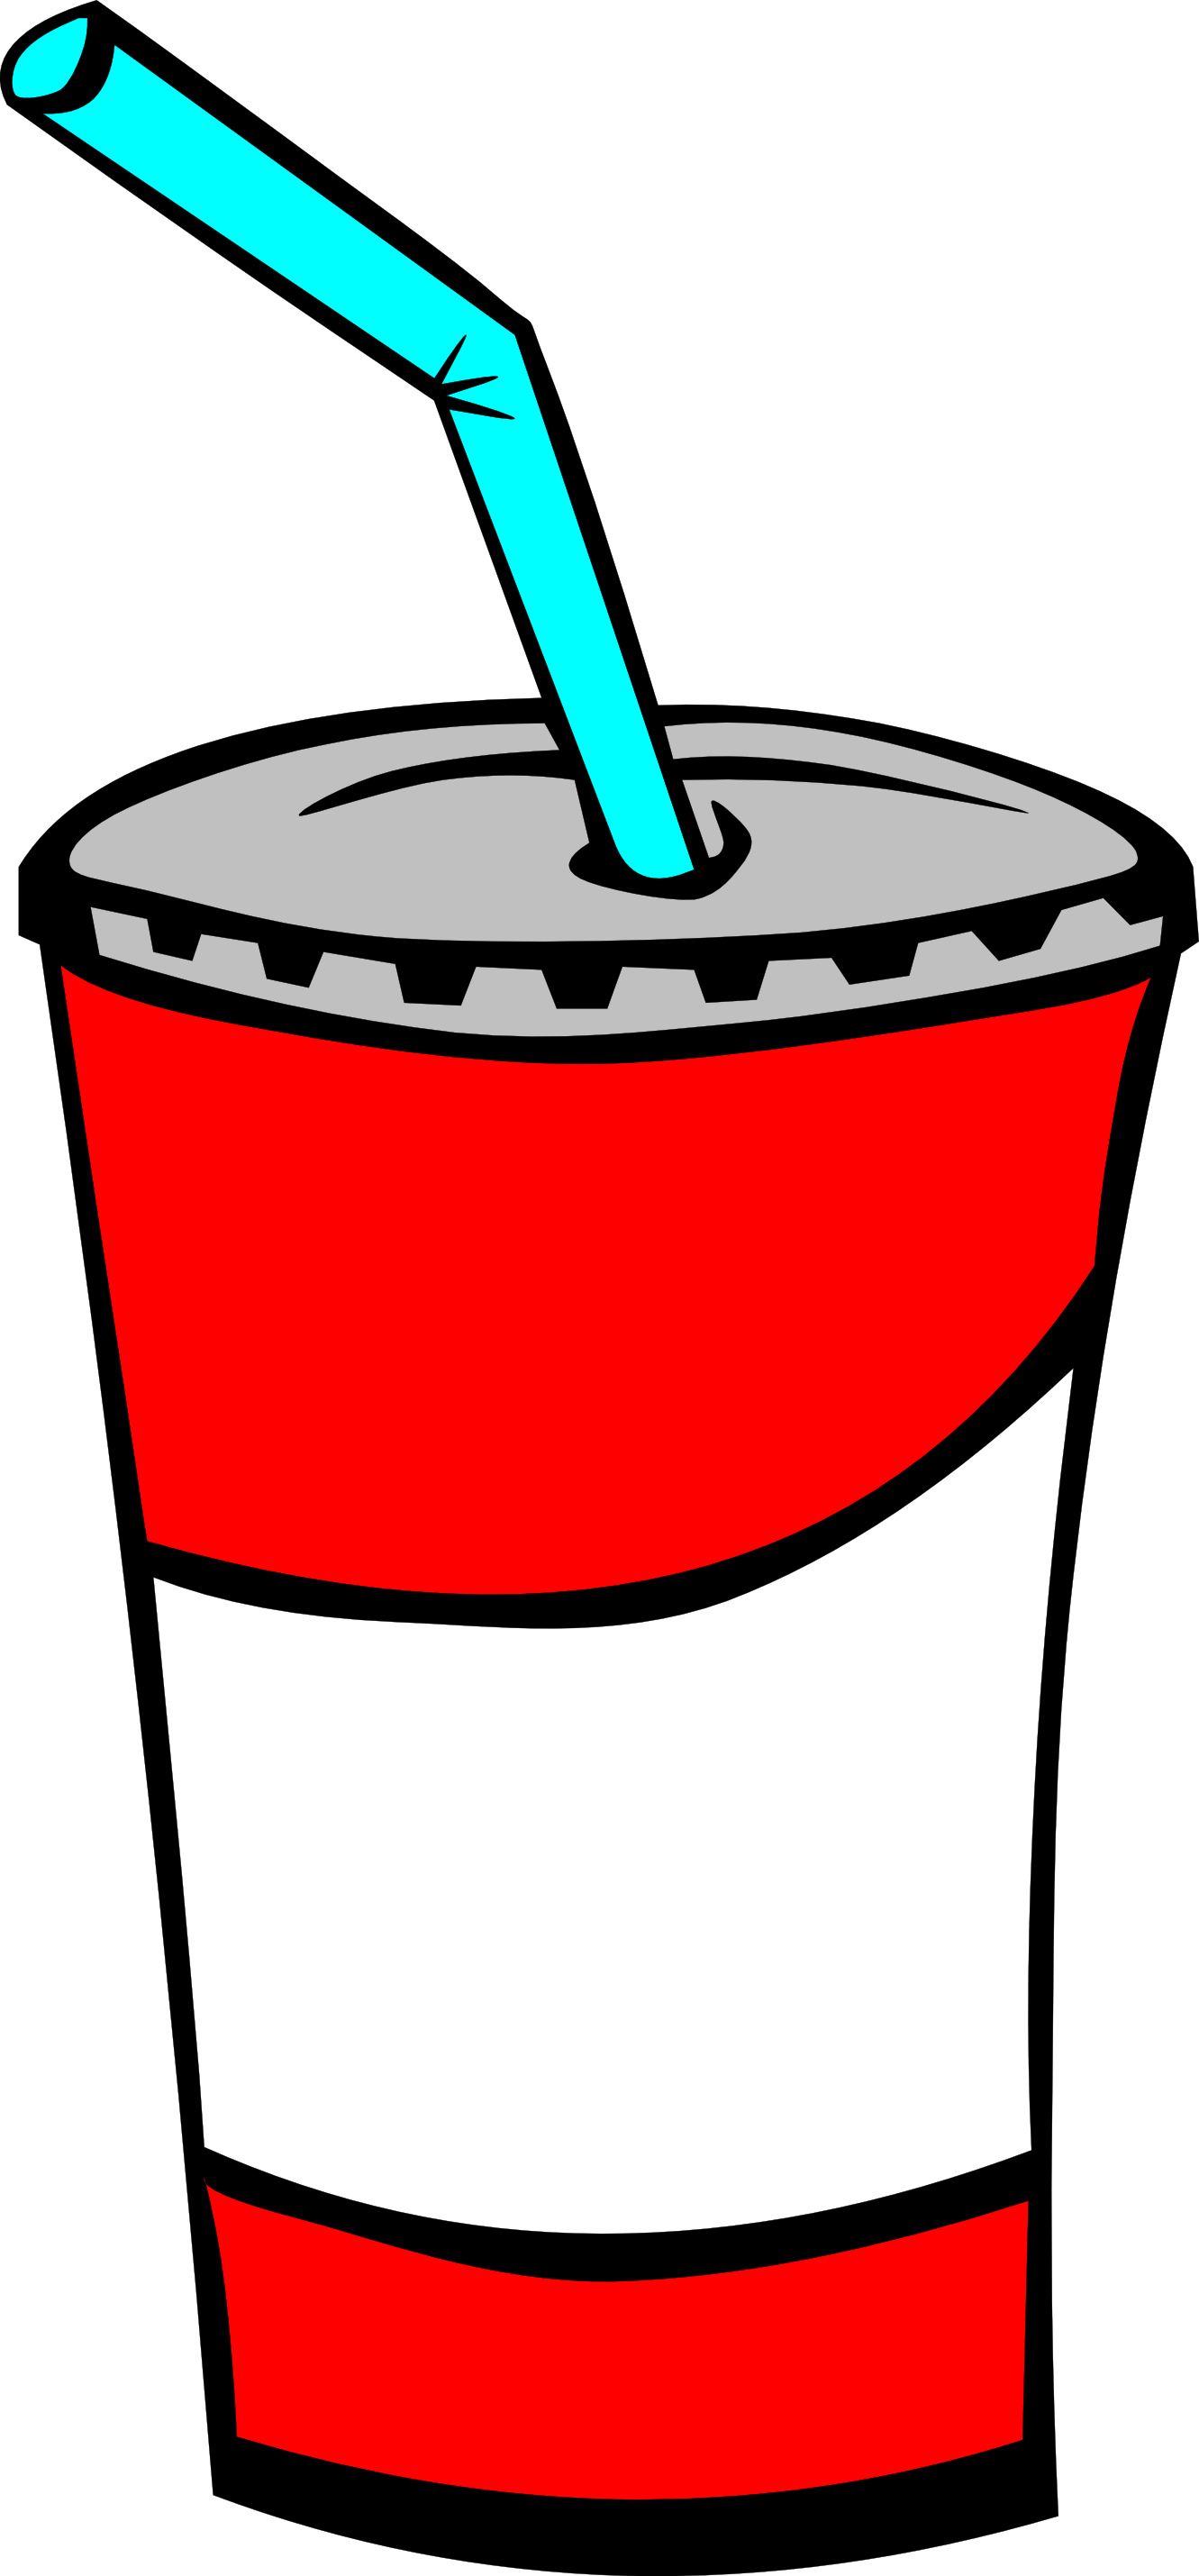 graphic royalty free library Junk food free on. Drink clipart